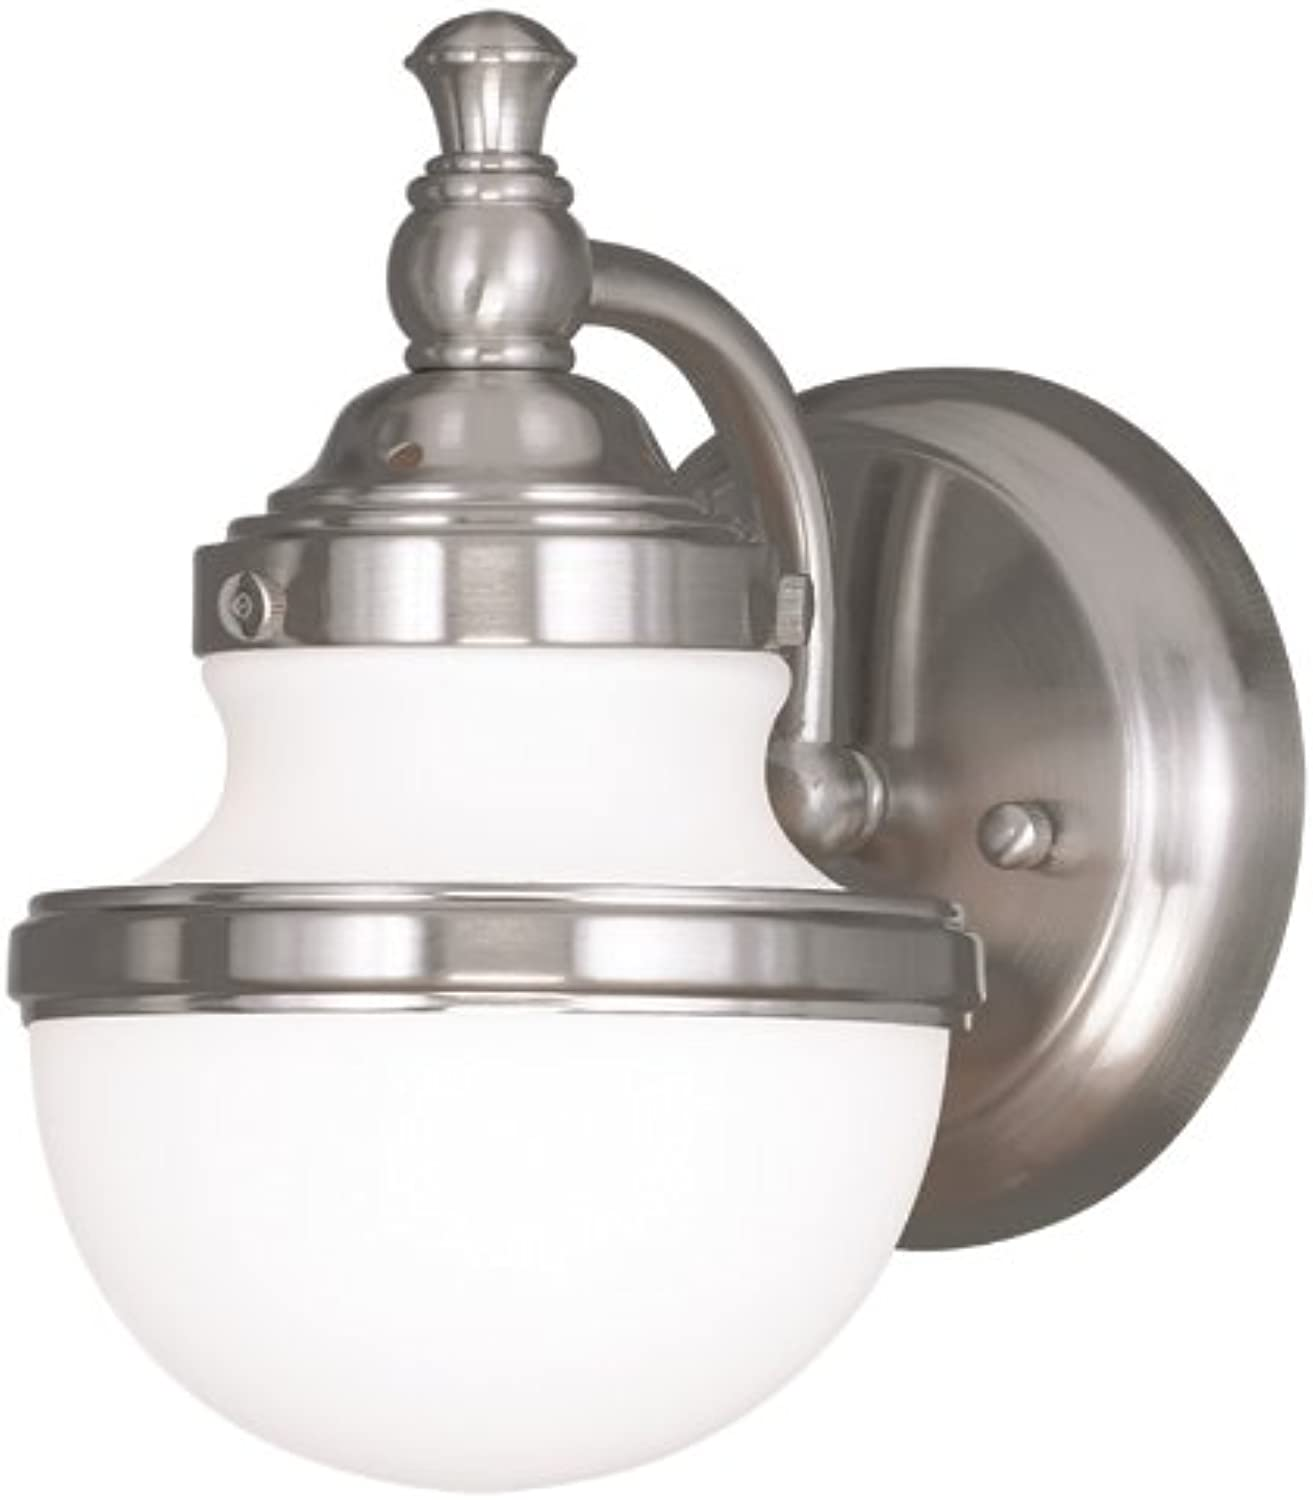 Livex Lighting 5711-91 Oldwick 1-Light Bath Light Wall Sconce, Brushed Nickel